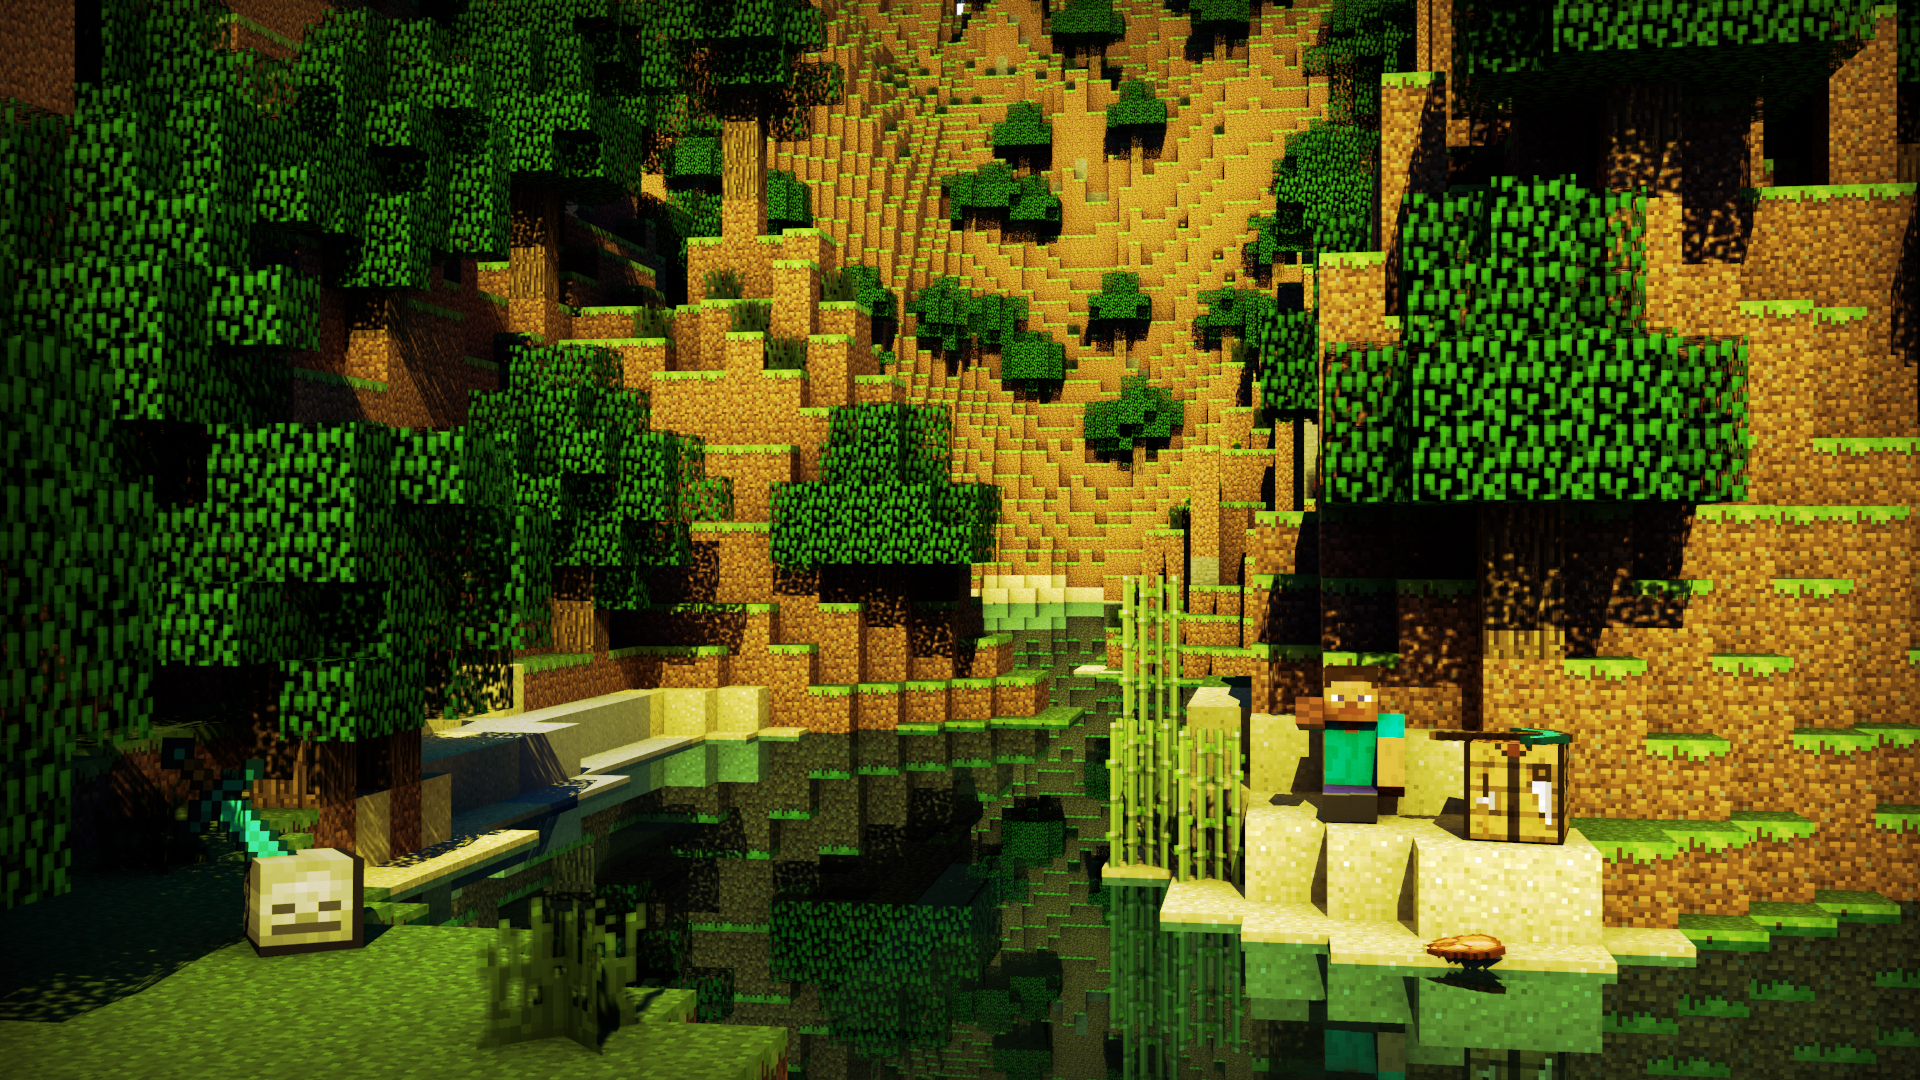 Free Download Minecraft Creeper Exclusive Hd Wallpapers 3750 1920x1080 For Your Desktop Mobile Tablet Explore 50 Minecraft Wallpaper Free Download Make Your Own Minecraft Wallpaper Best Minecraft Wallpapers Minecraft Hd Wallpaper Pack